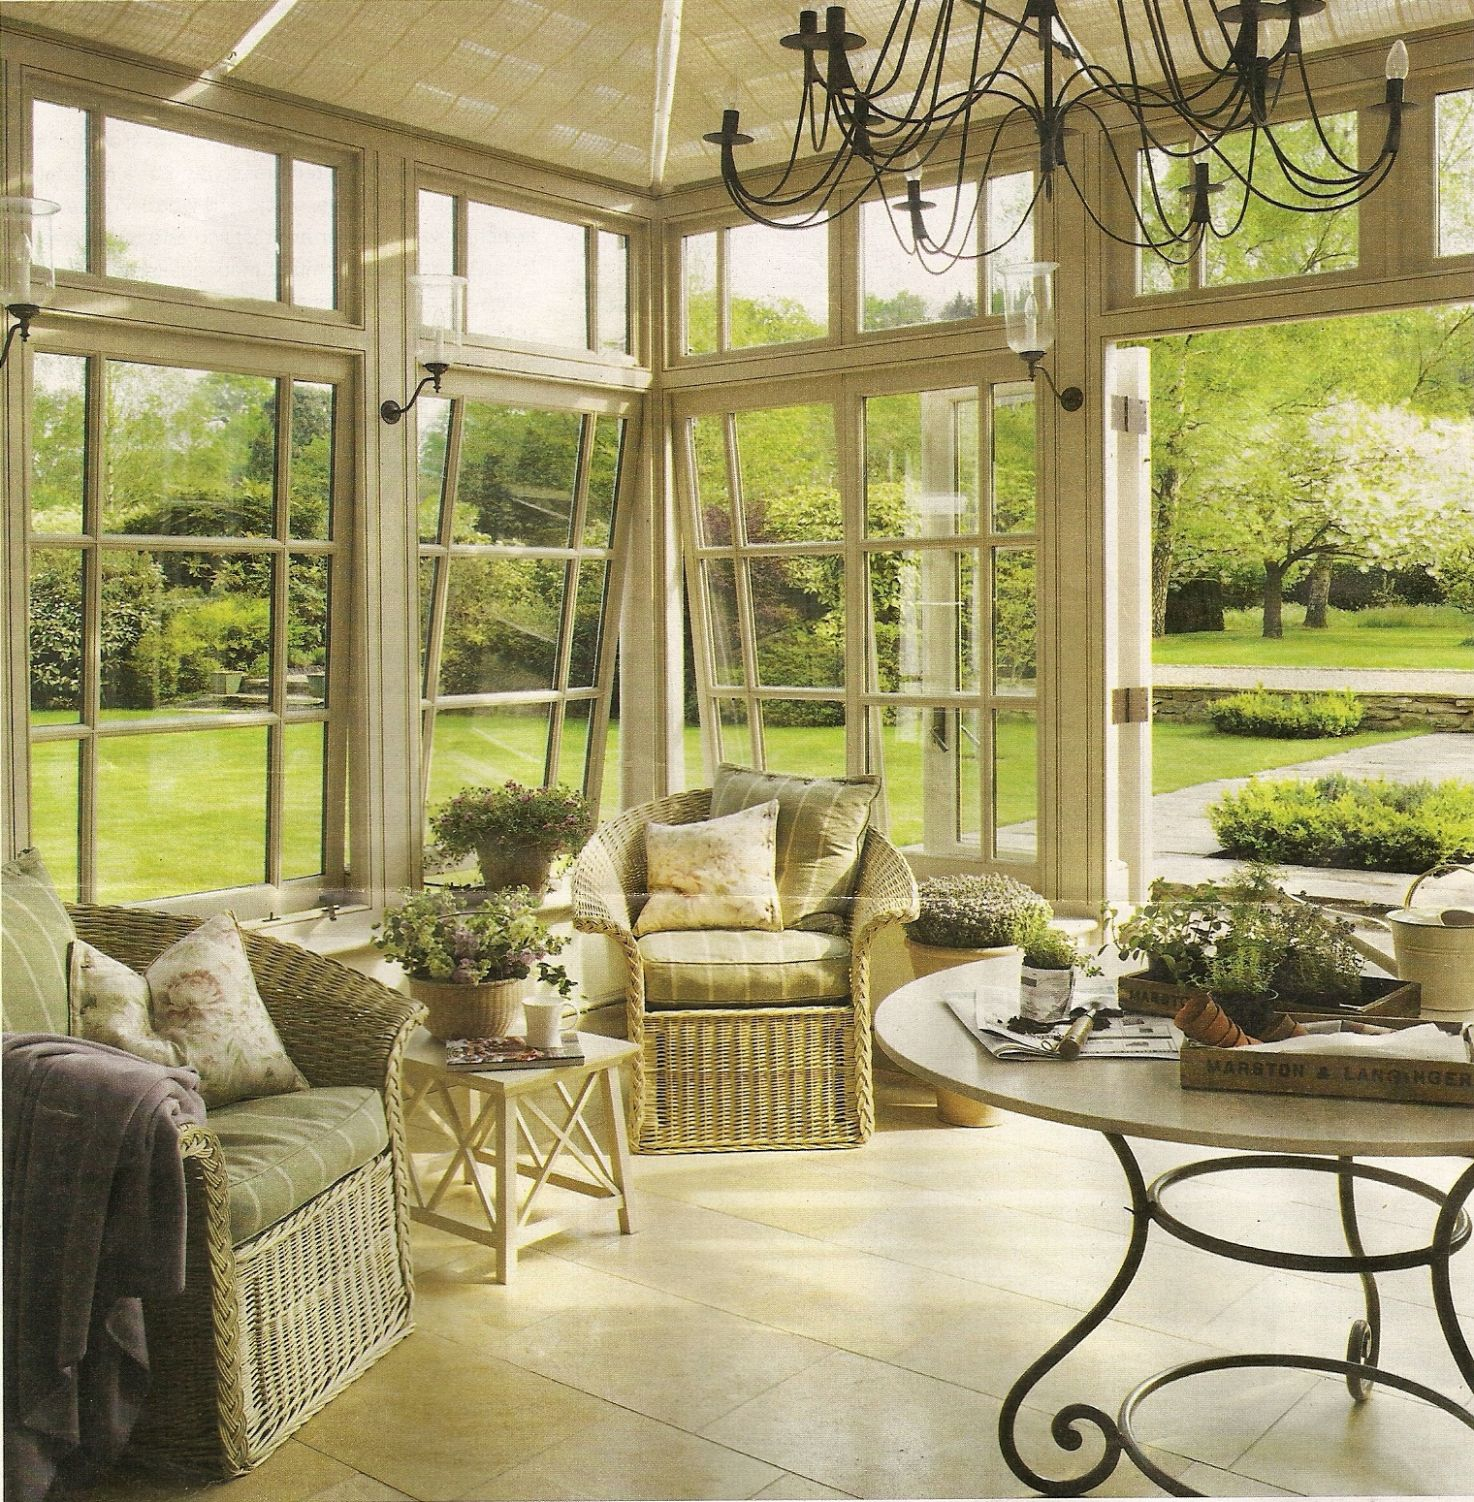 11 Bright Sunrooms That Take Every Advantage of Natural Light - sunroom landscaping ideas